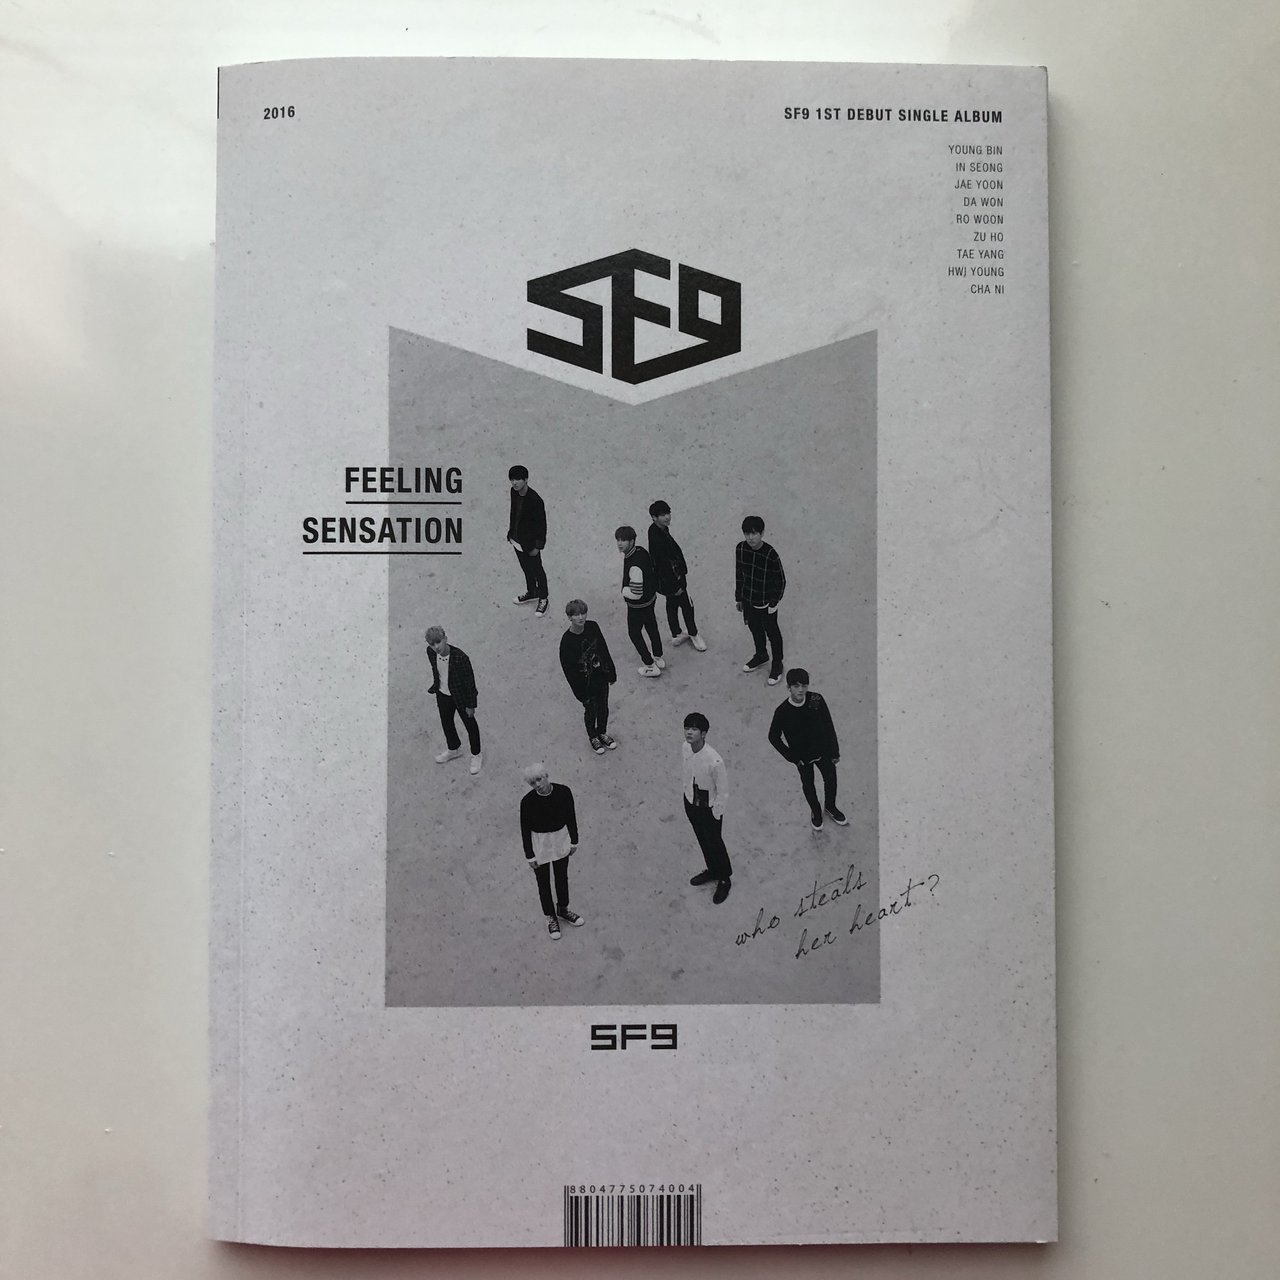 sf9 feeling sensation new cd has only been used not sf9 depop